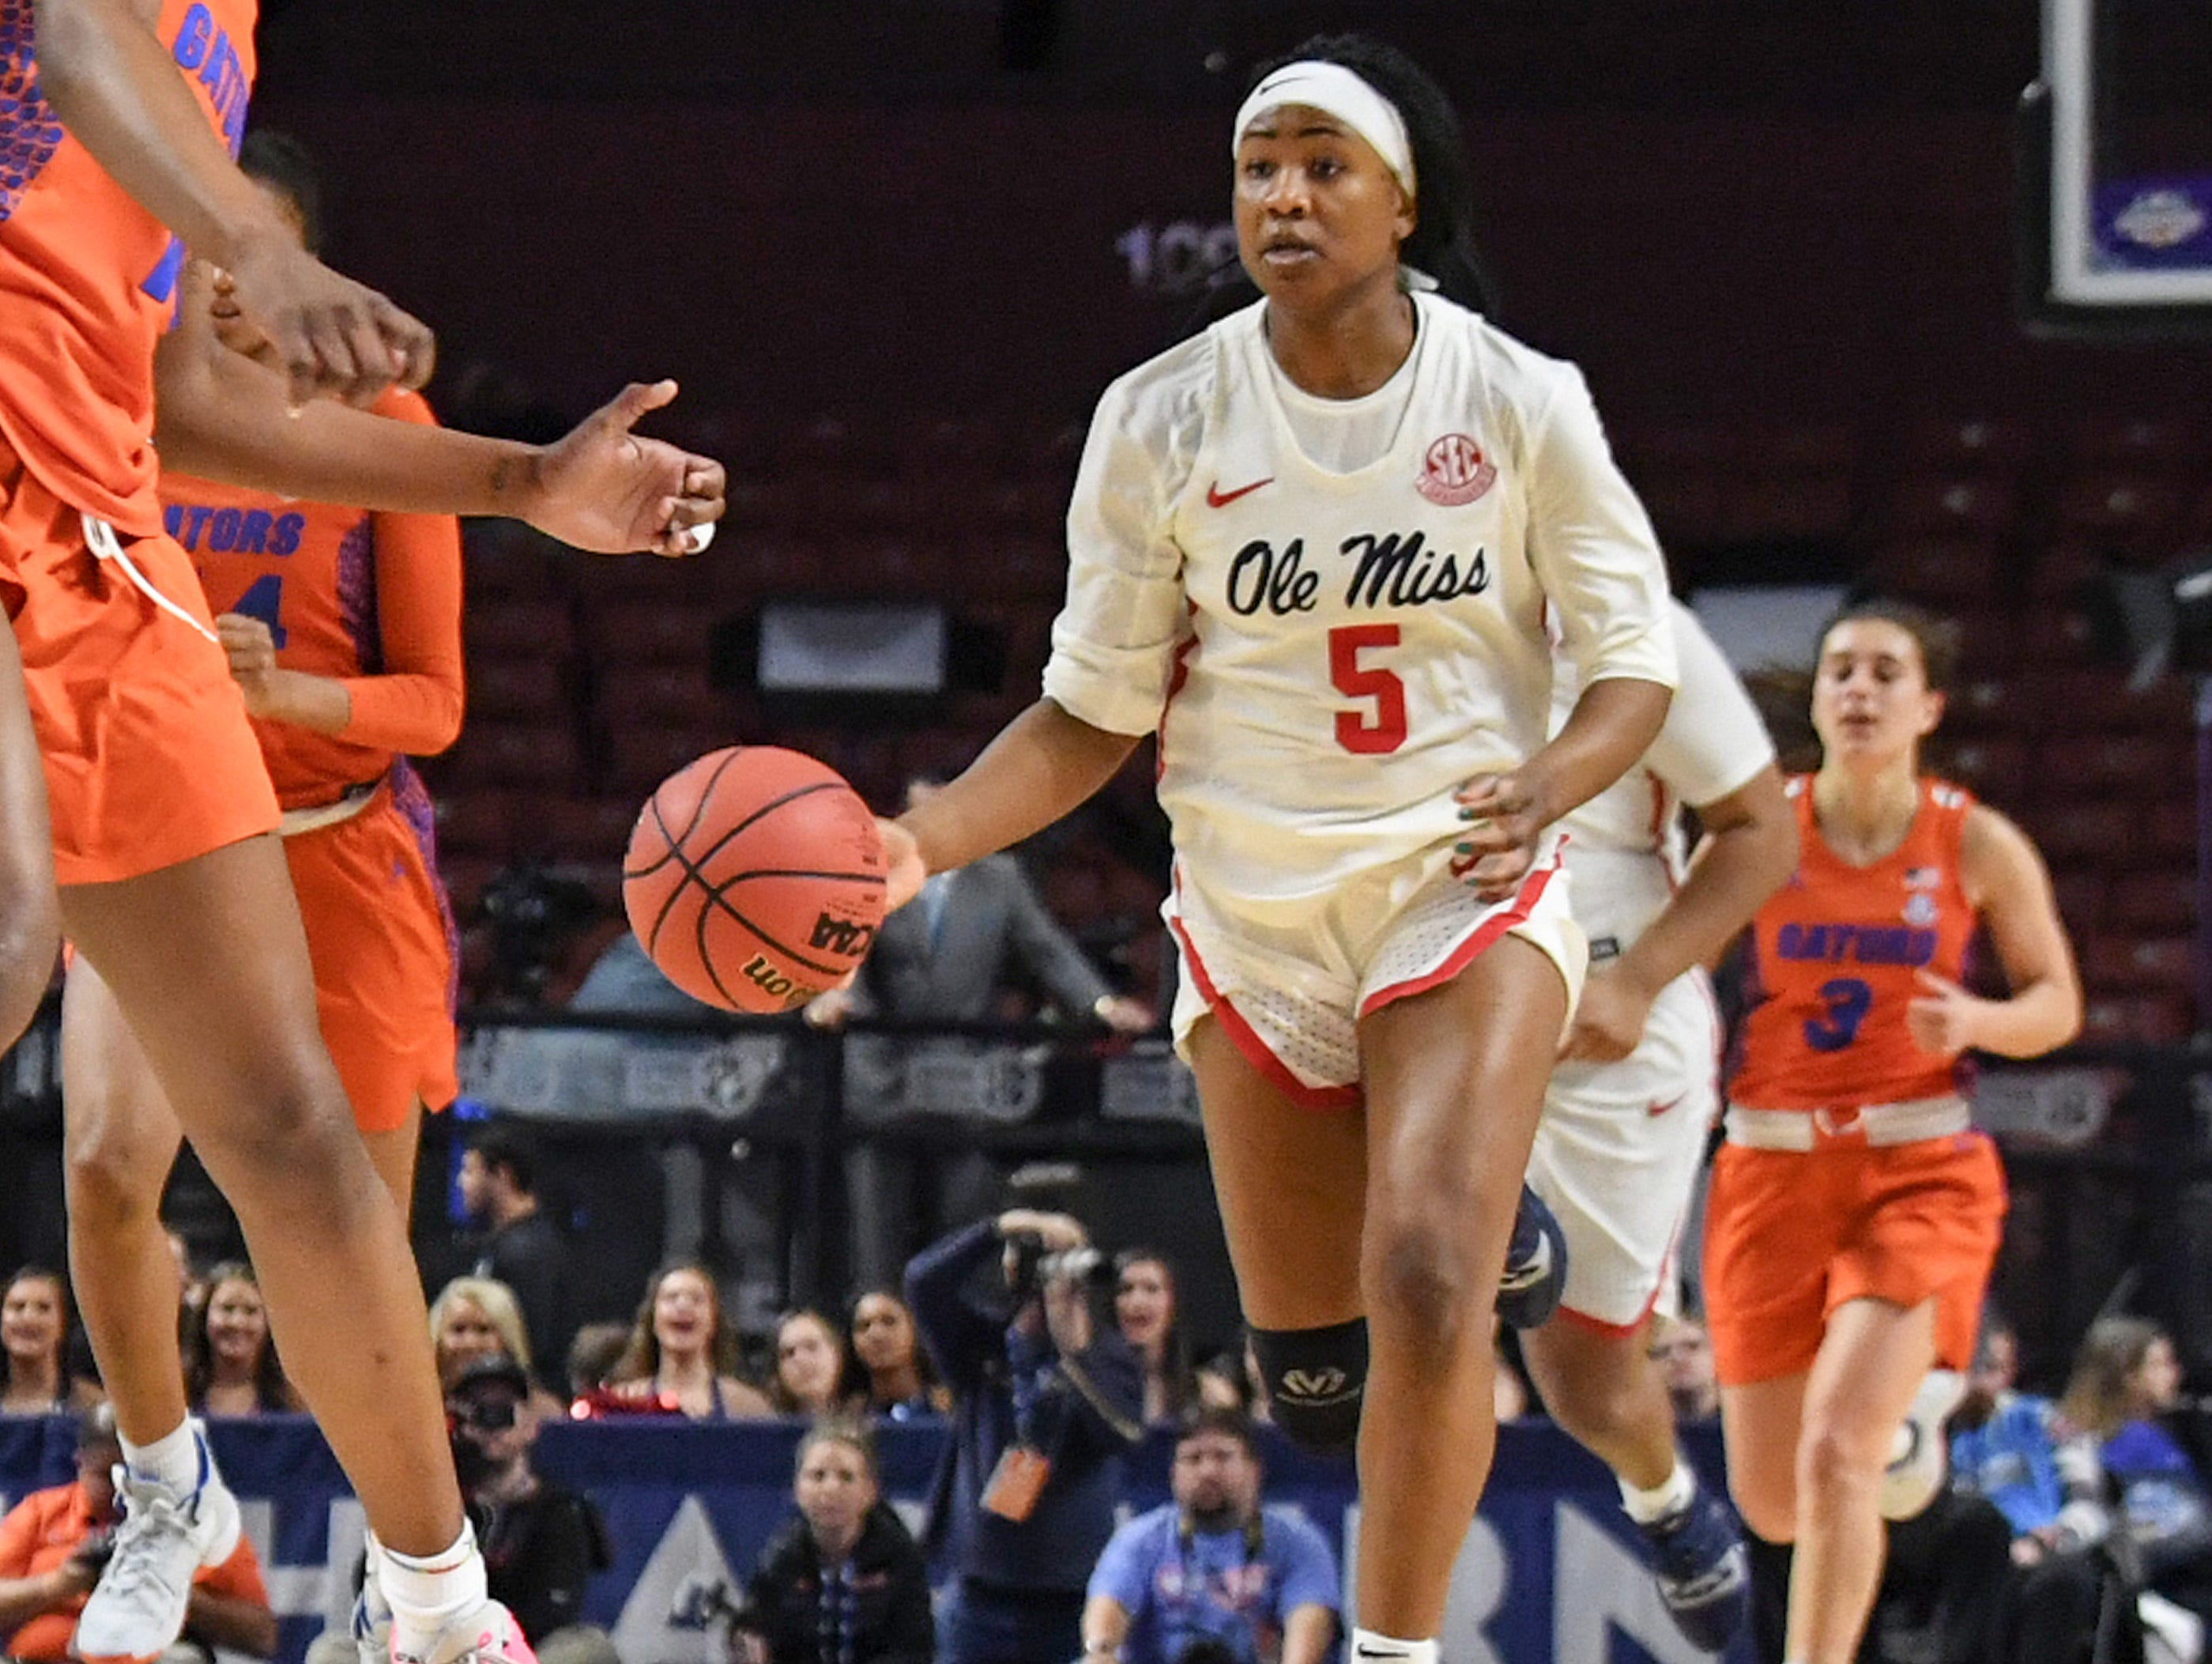 Ole Miss senior Crystal Allen(5) dribbles against Florida during the fourth quarter of the Southeastern Conference Women's Tournament game at Bon Secour Wellness Arena in Greenville Wednesday, March 6, 2019.